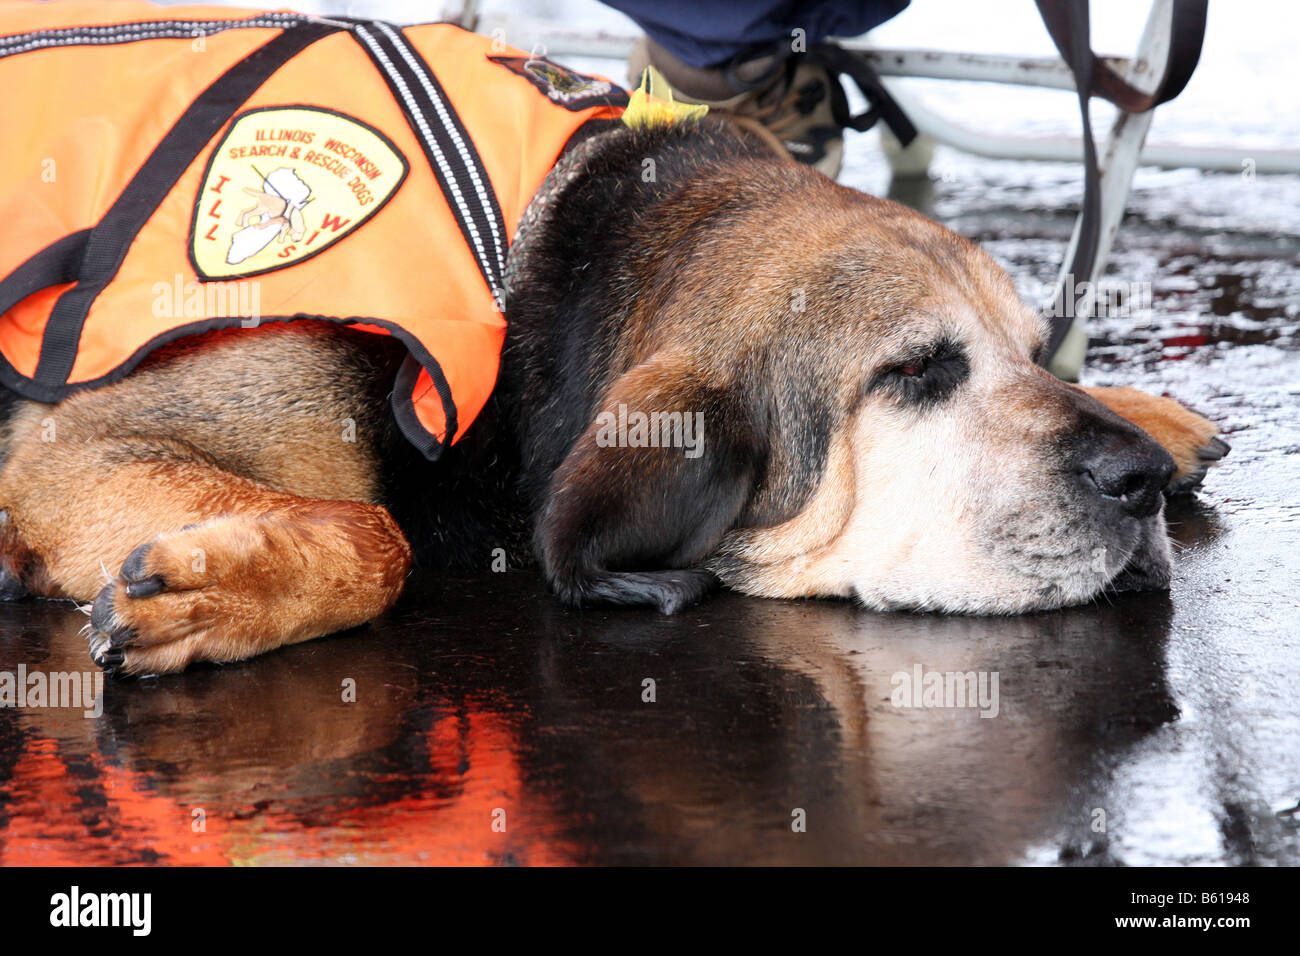 A Illinois and Wisconsin Search and Rescue Bloodhound dog laying down on the wet pavement after it rained - Stock Image